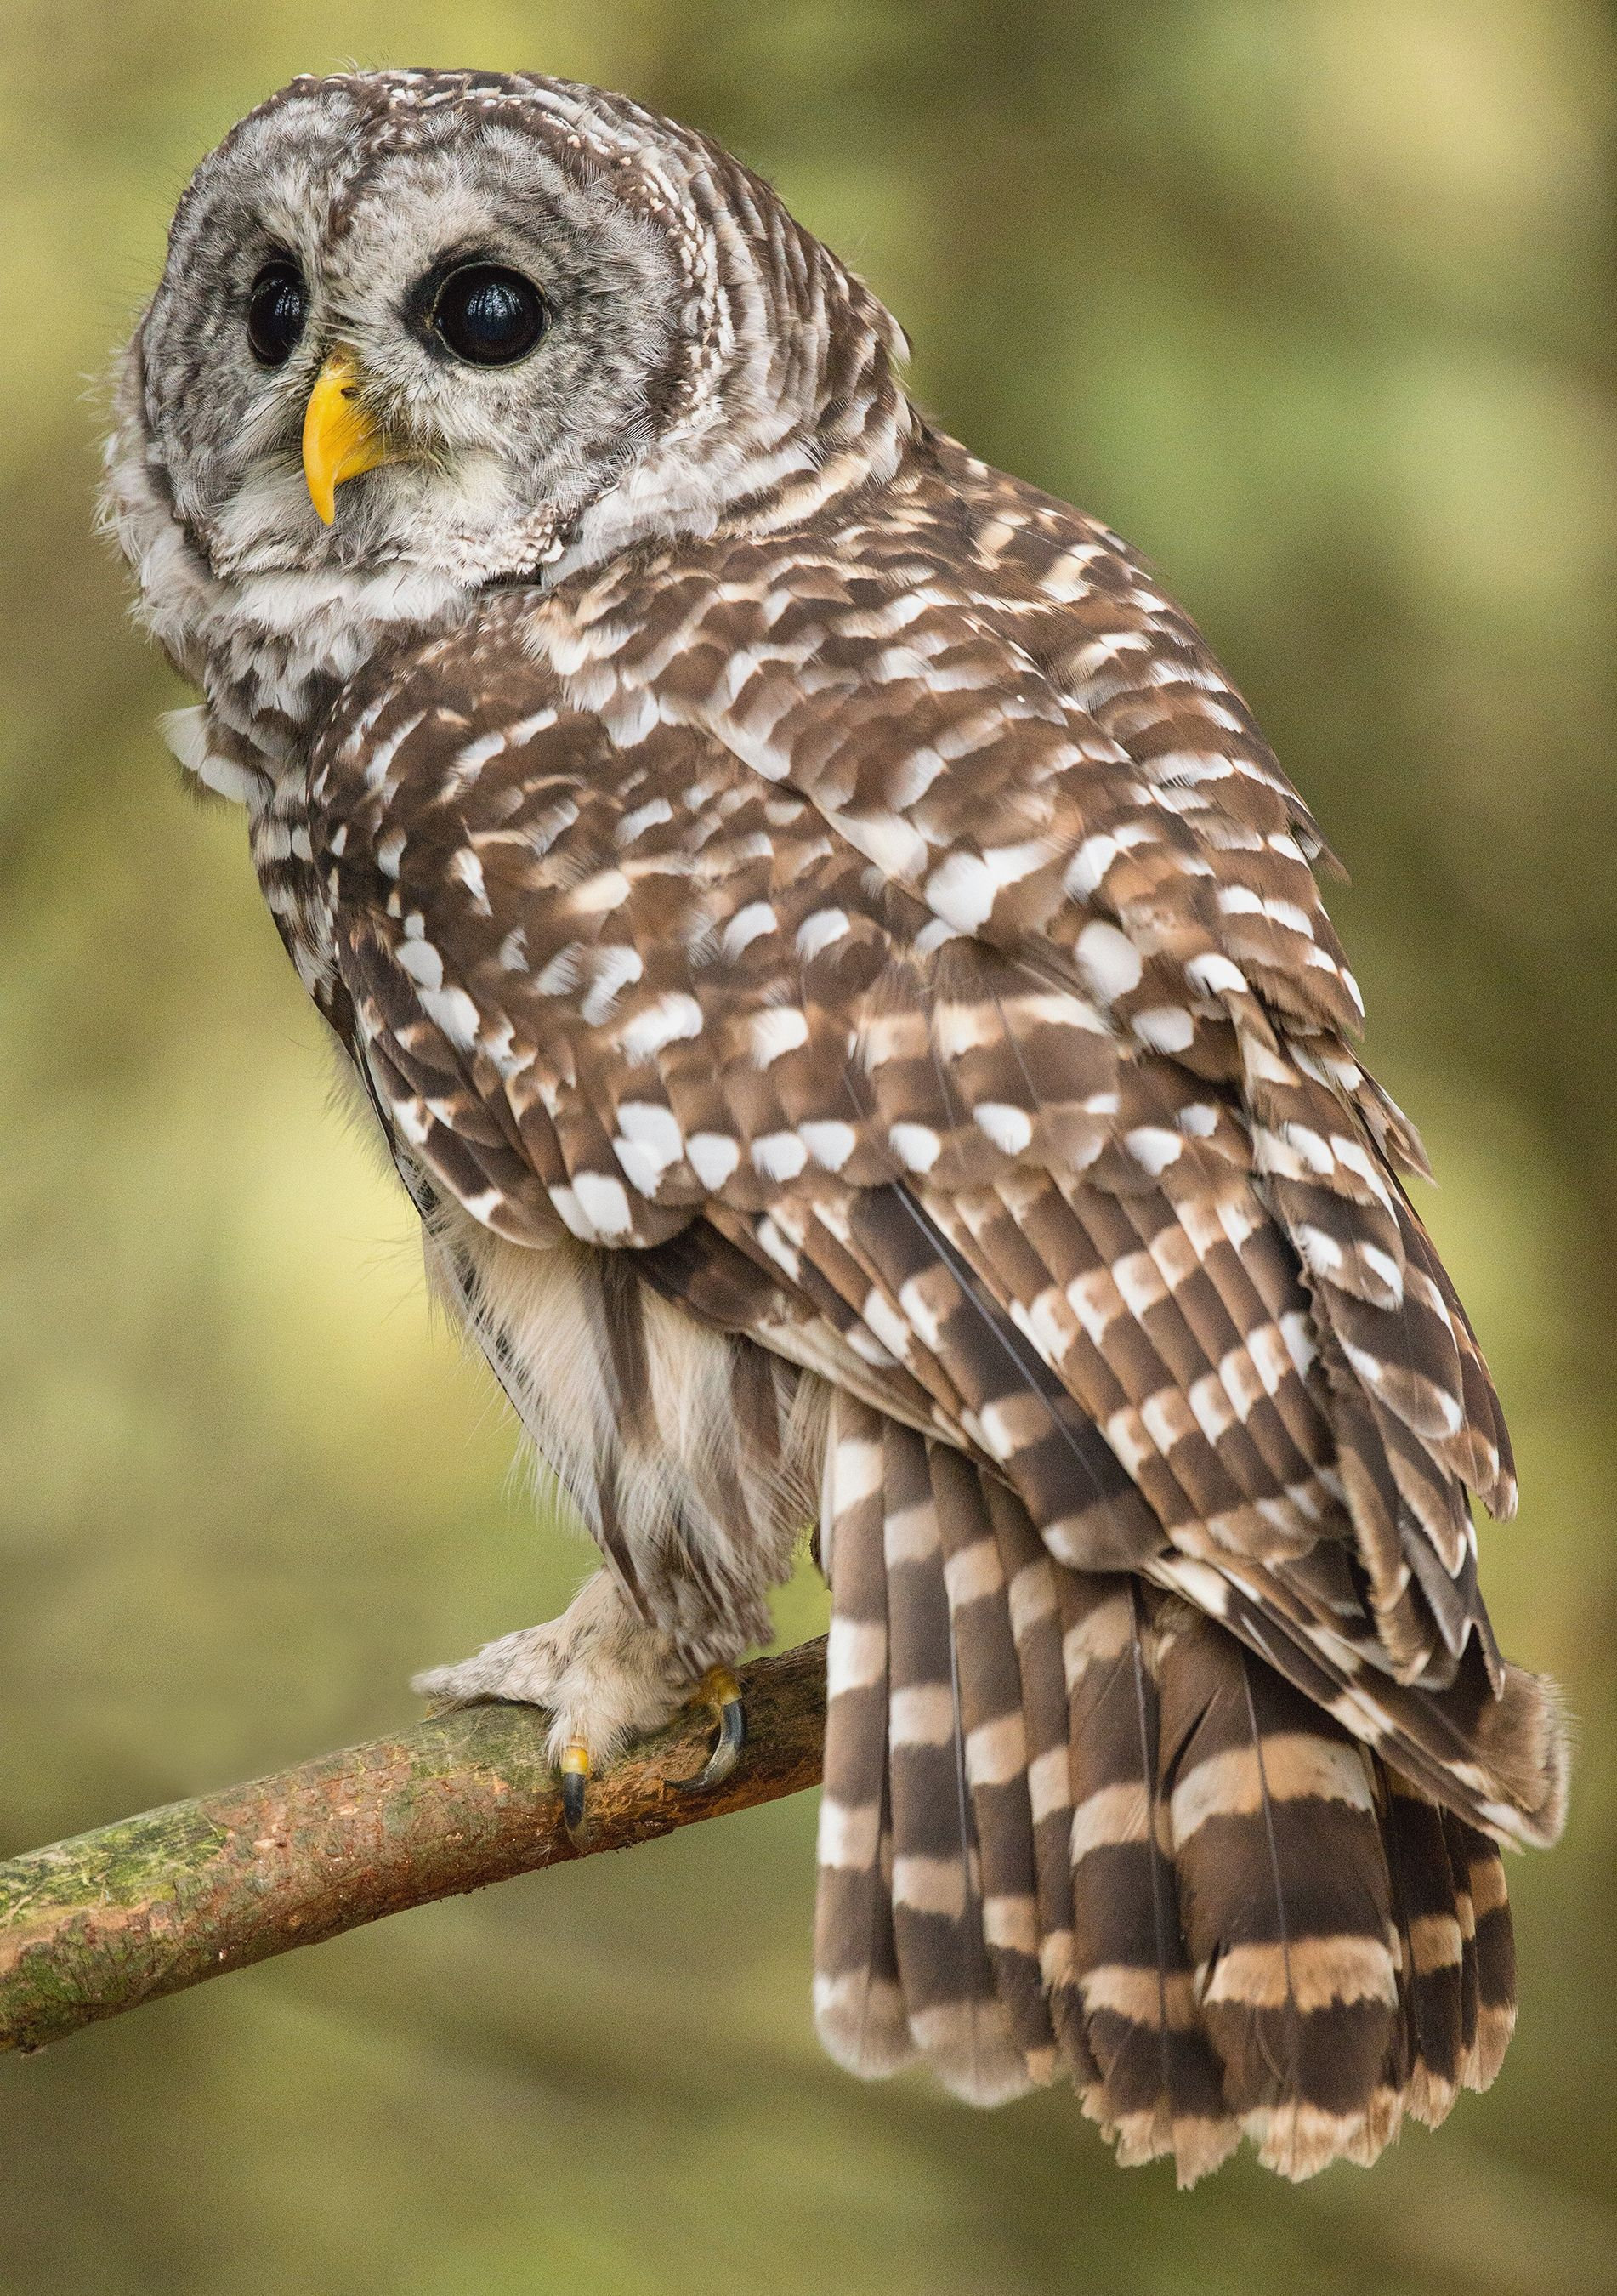 the barred owl analysis